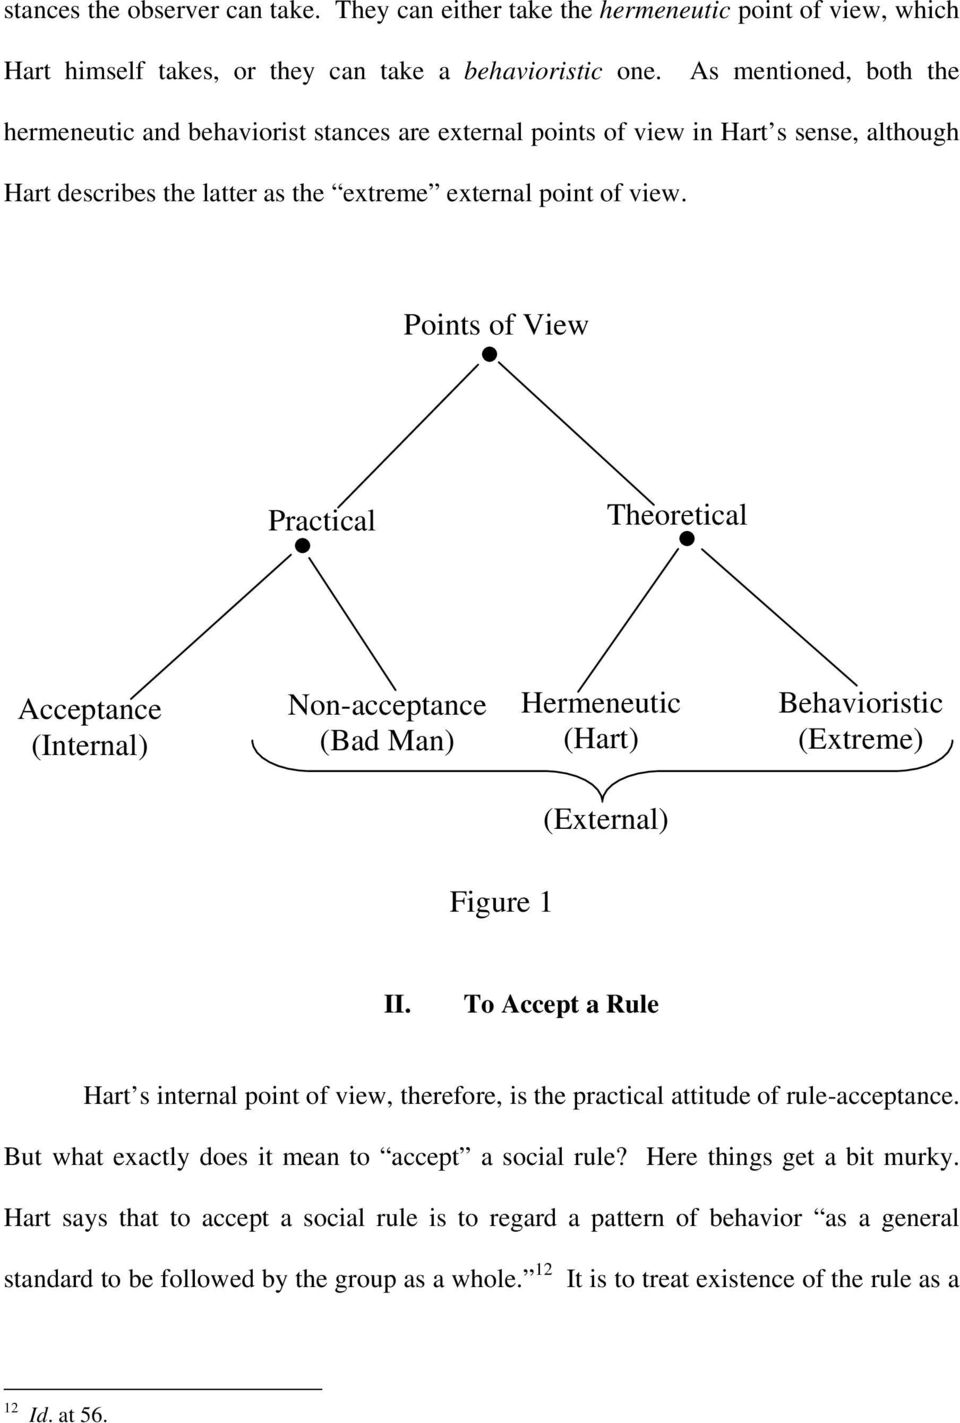 Points of View Practical Theoretical Acceptance (Internal) Non-acceptance (Bad Man) Hermeneutic (Hart) Behavioristic (Extreme) (External) Figure 1 II.